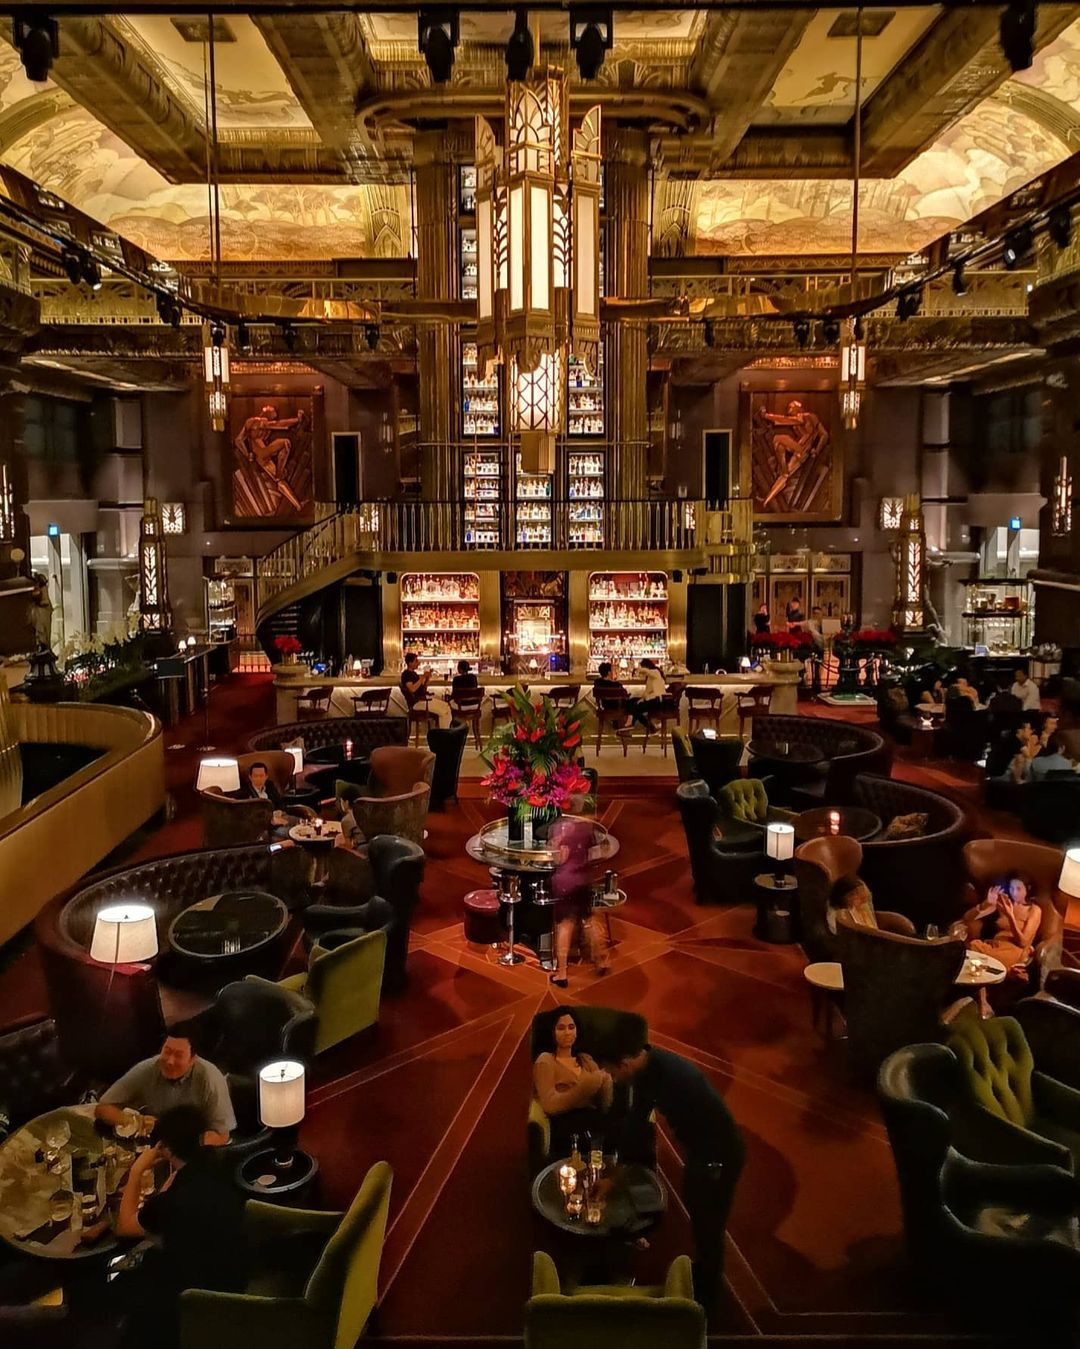 A photo of Atlas's interior, taken from a high vantage point. The European art deco aesthetic is apparent. A red carpet with straight geometric designs covers the floor. Leather-lined chairs and tables are arranged neatly on top of the floor. The well-illuminated bar near the center of the massive room seems to have no bartender. Atlas seems to be at 75% capacity. Art-deco-inspired chandeliers hang from the similarly-inspired ceiling, illuminating the area below.